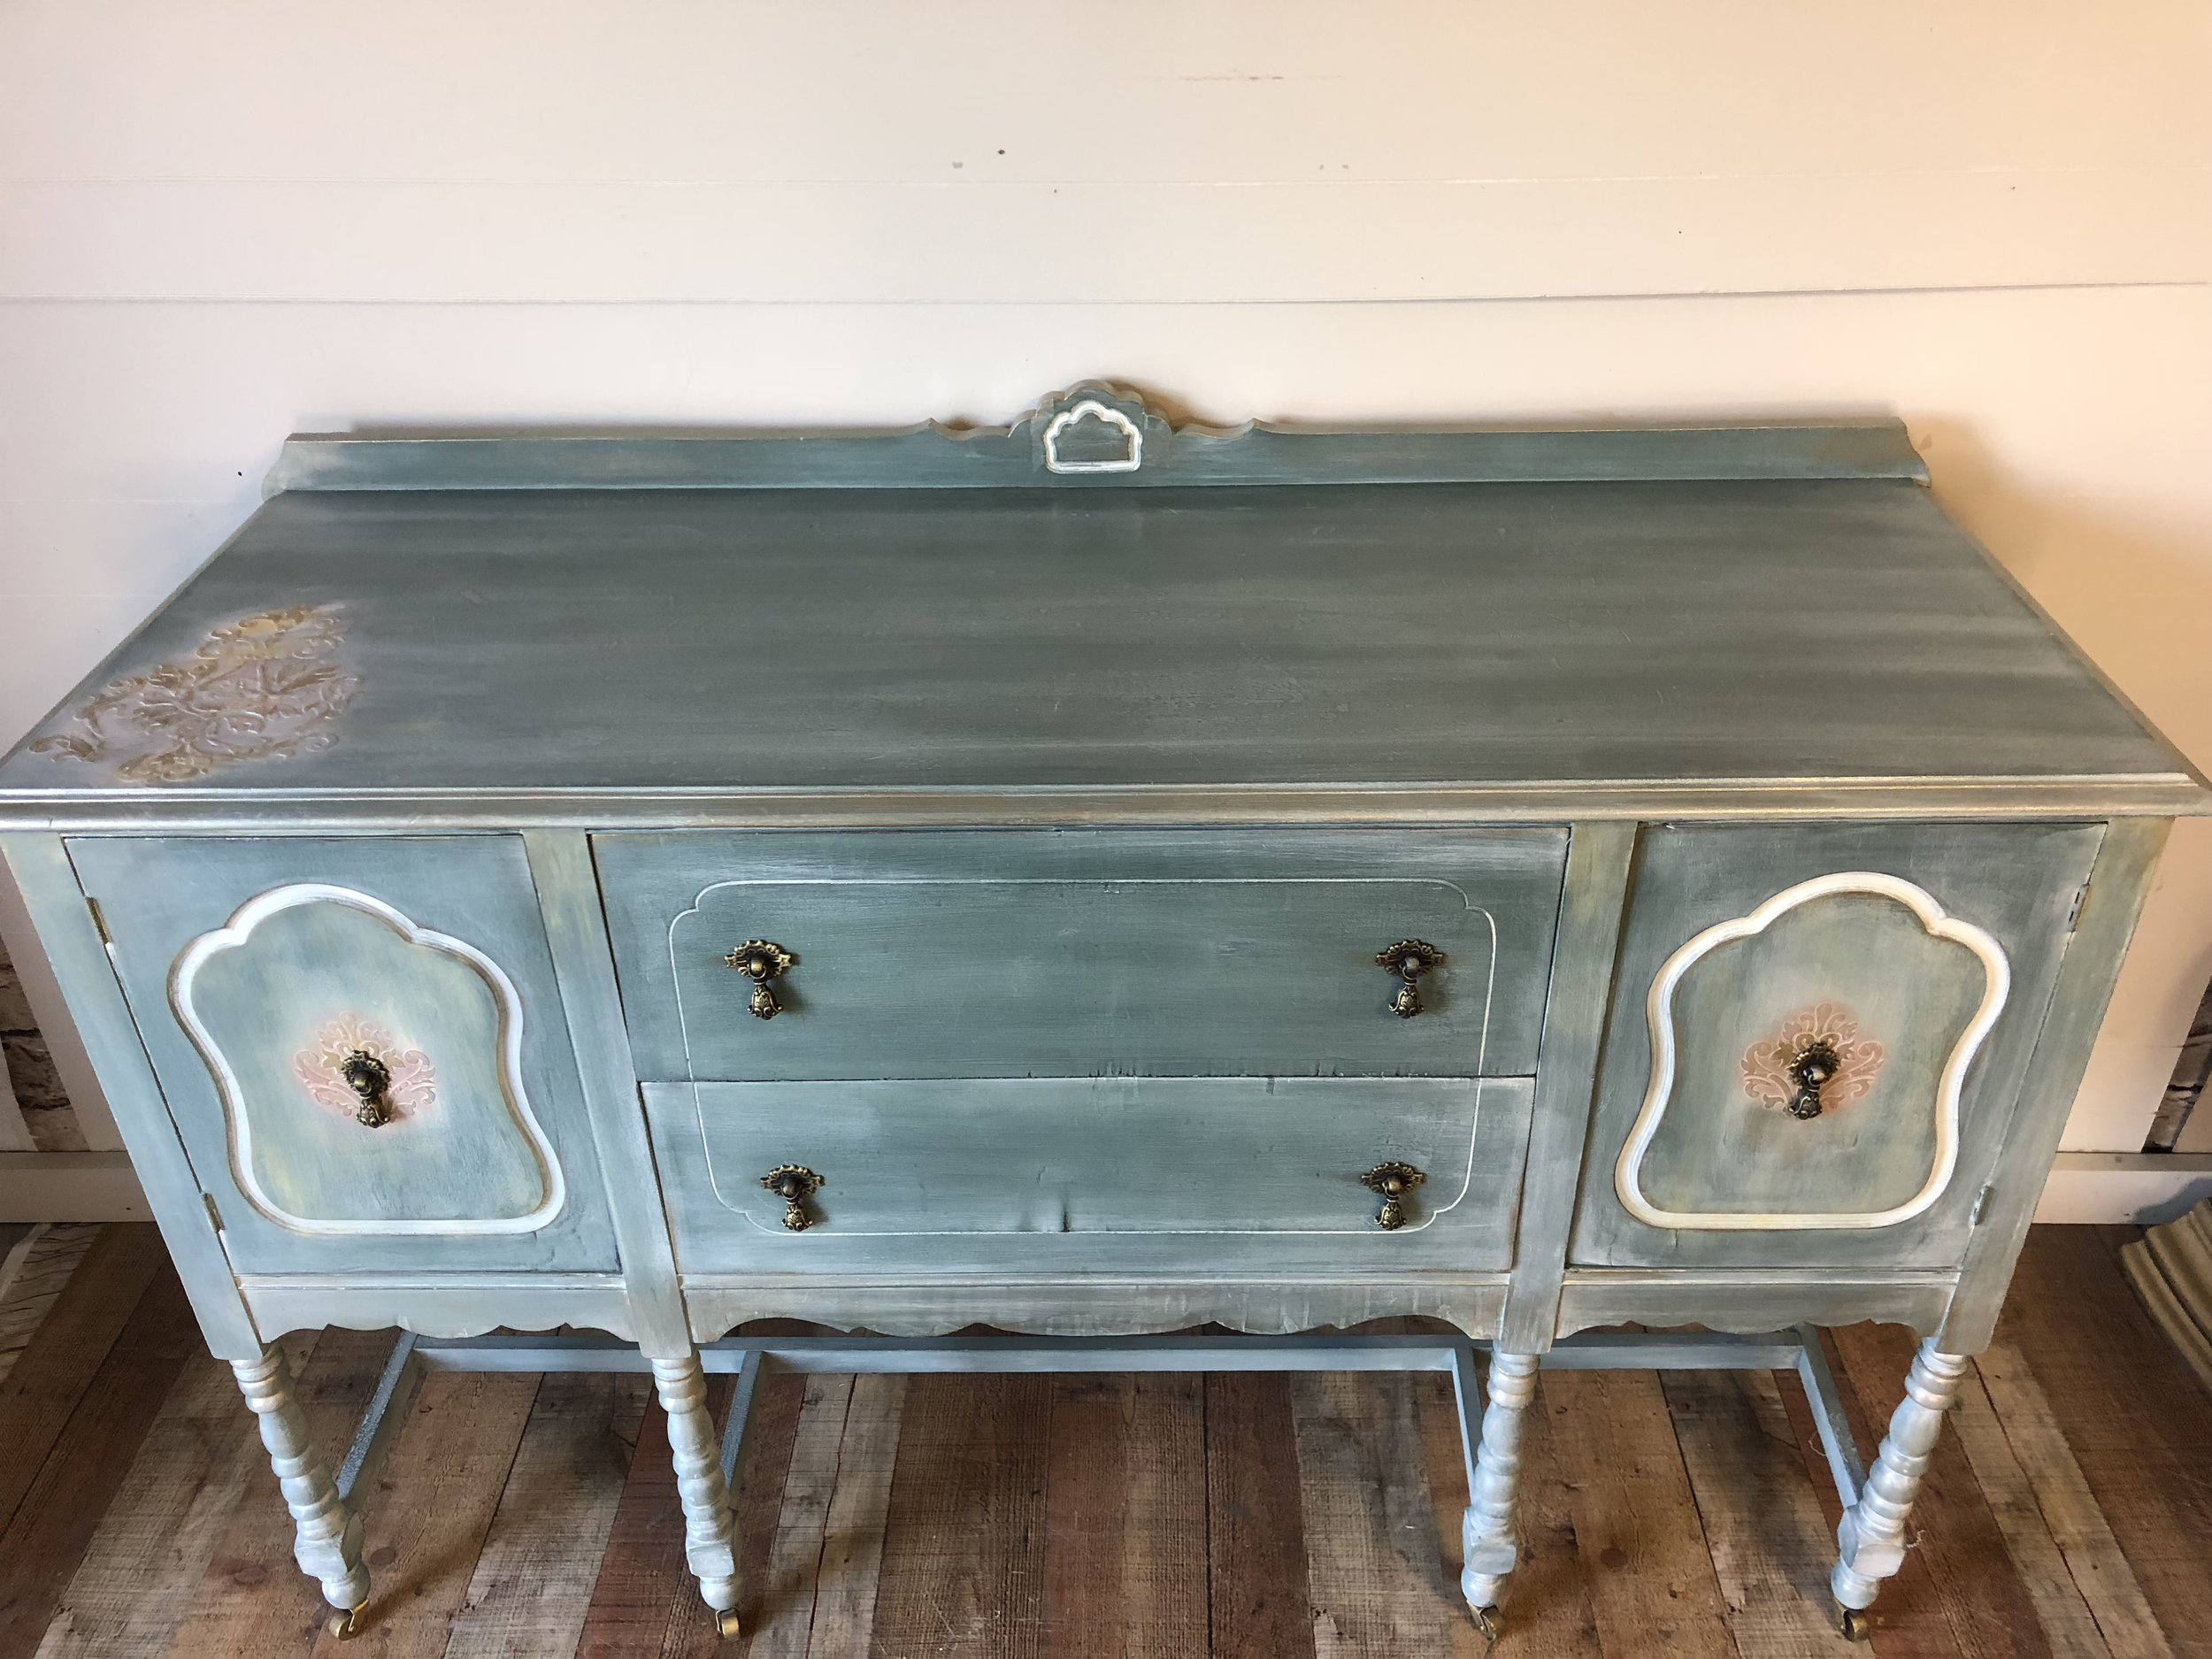 Shabby Chic Vintage Nursery Vintage Buffet Shabby Chic Dinning Room Furniture Living Room Storage Tv Stand Nursery Furniture Refinished Painted Buffet